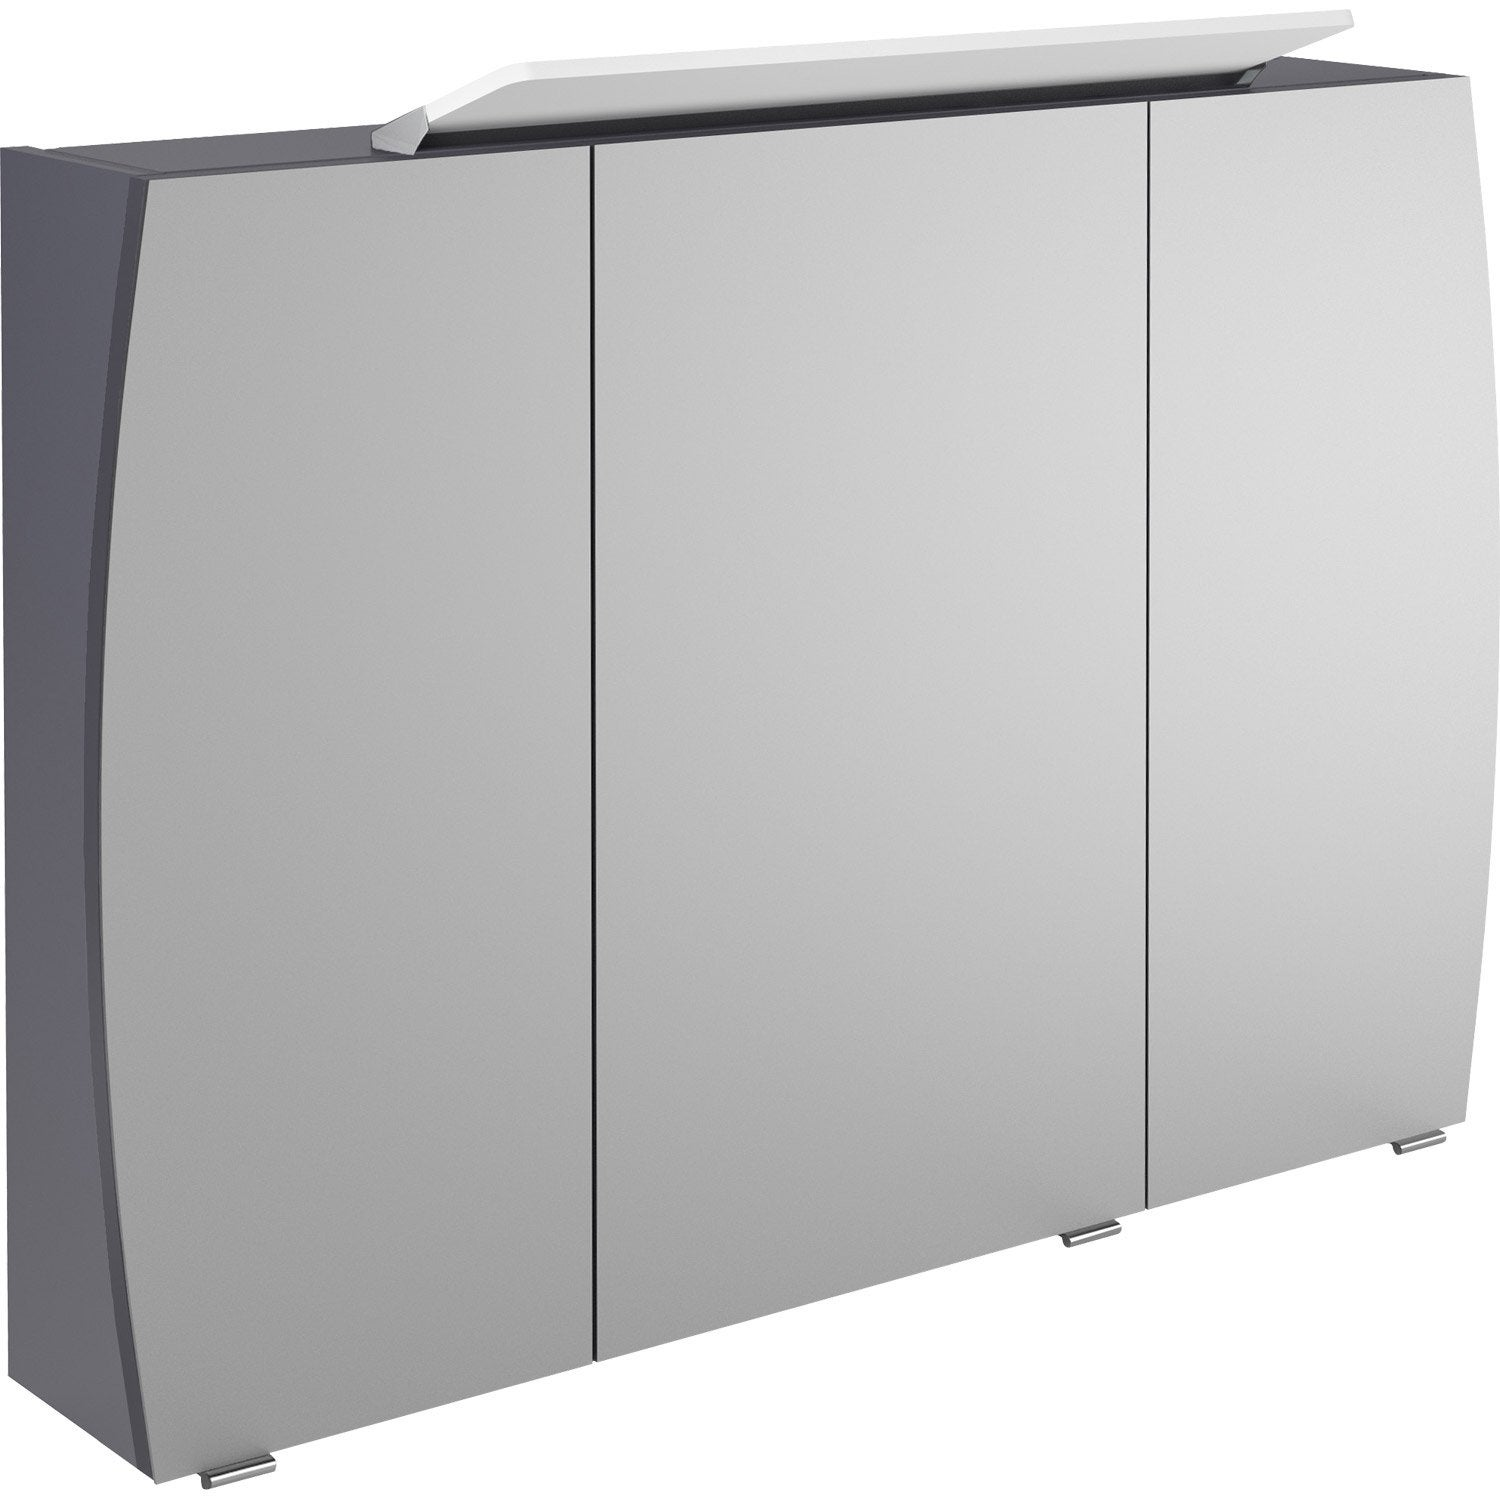 armoire de toilette lumineuse l 100 cm gris image. Black Bedroom Furniture Sets. Home Design Ideas